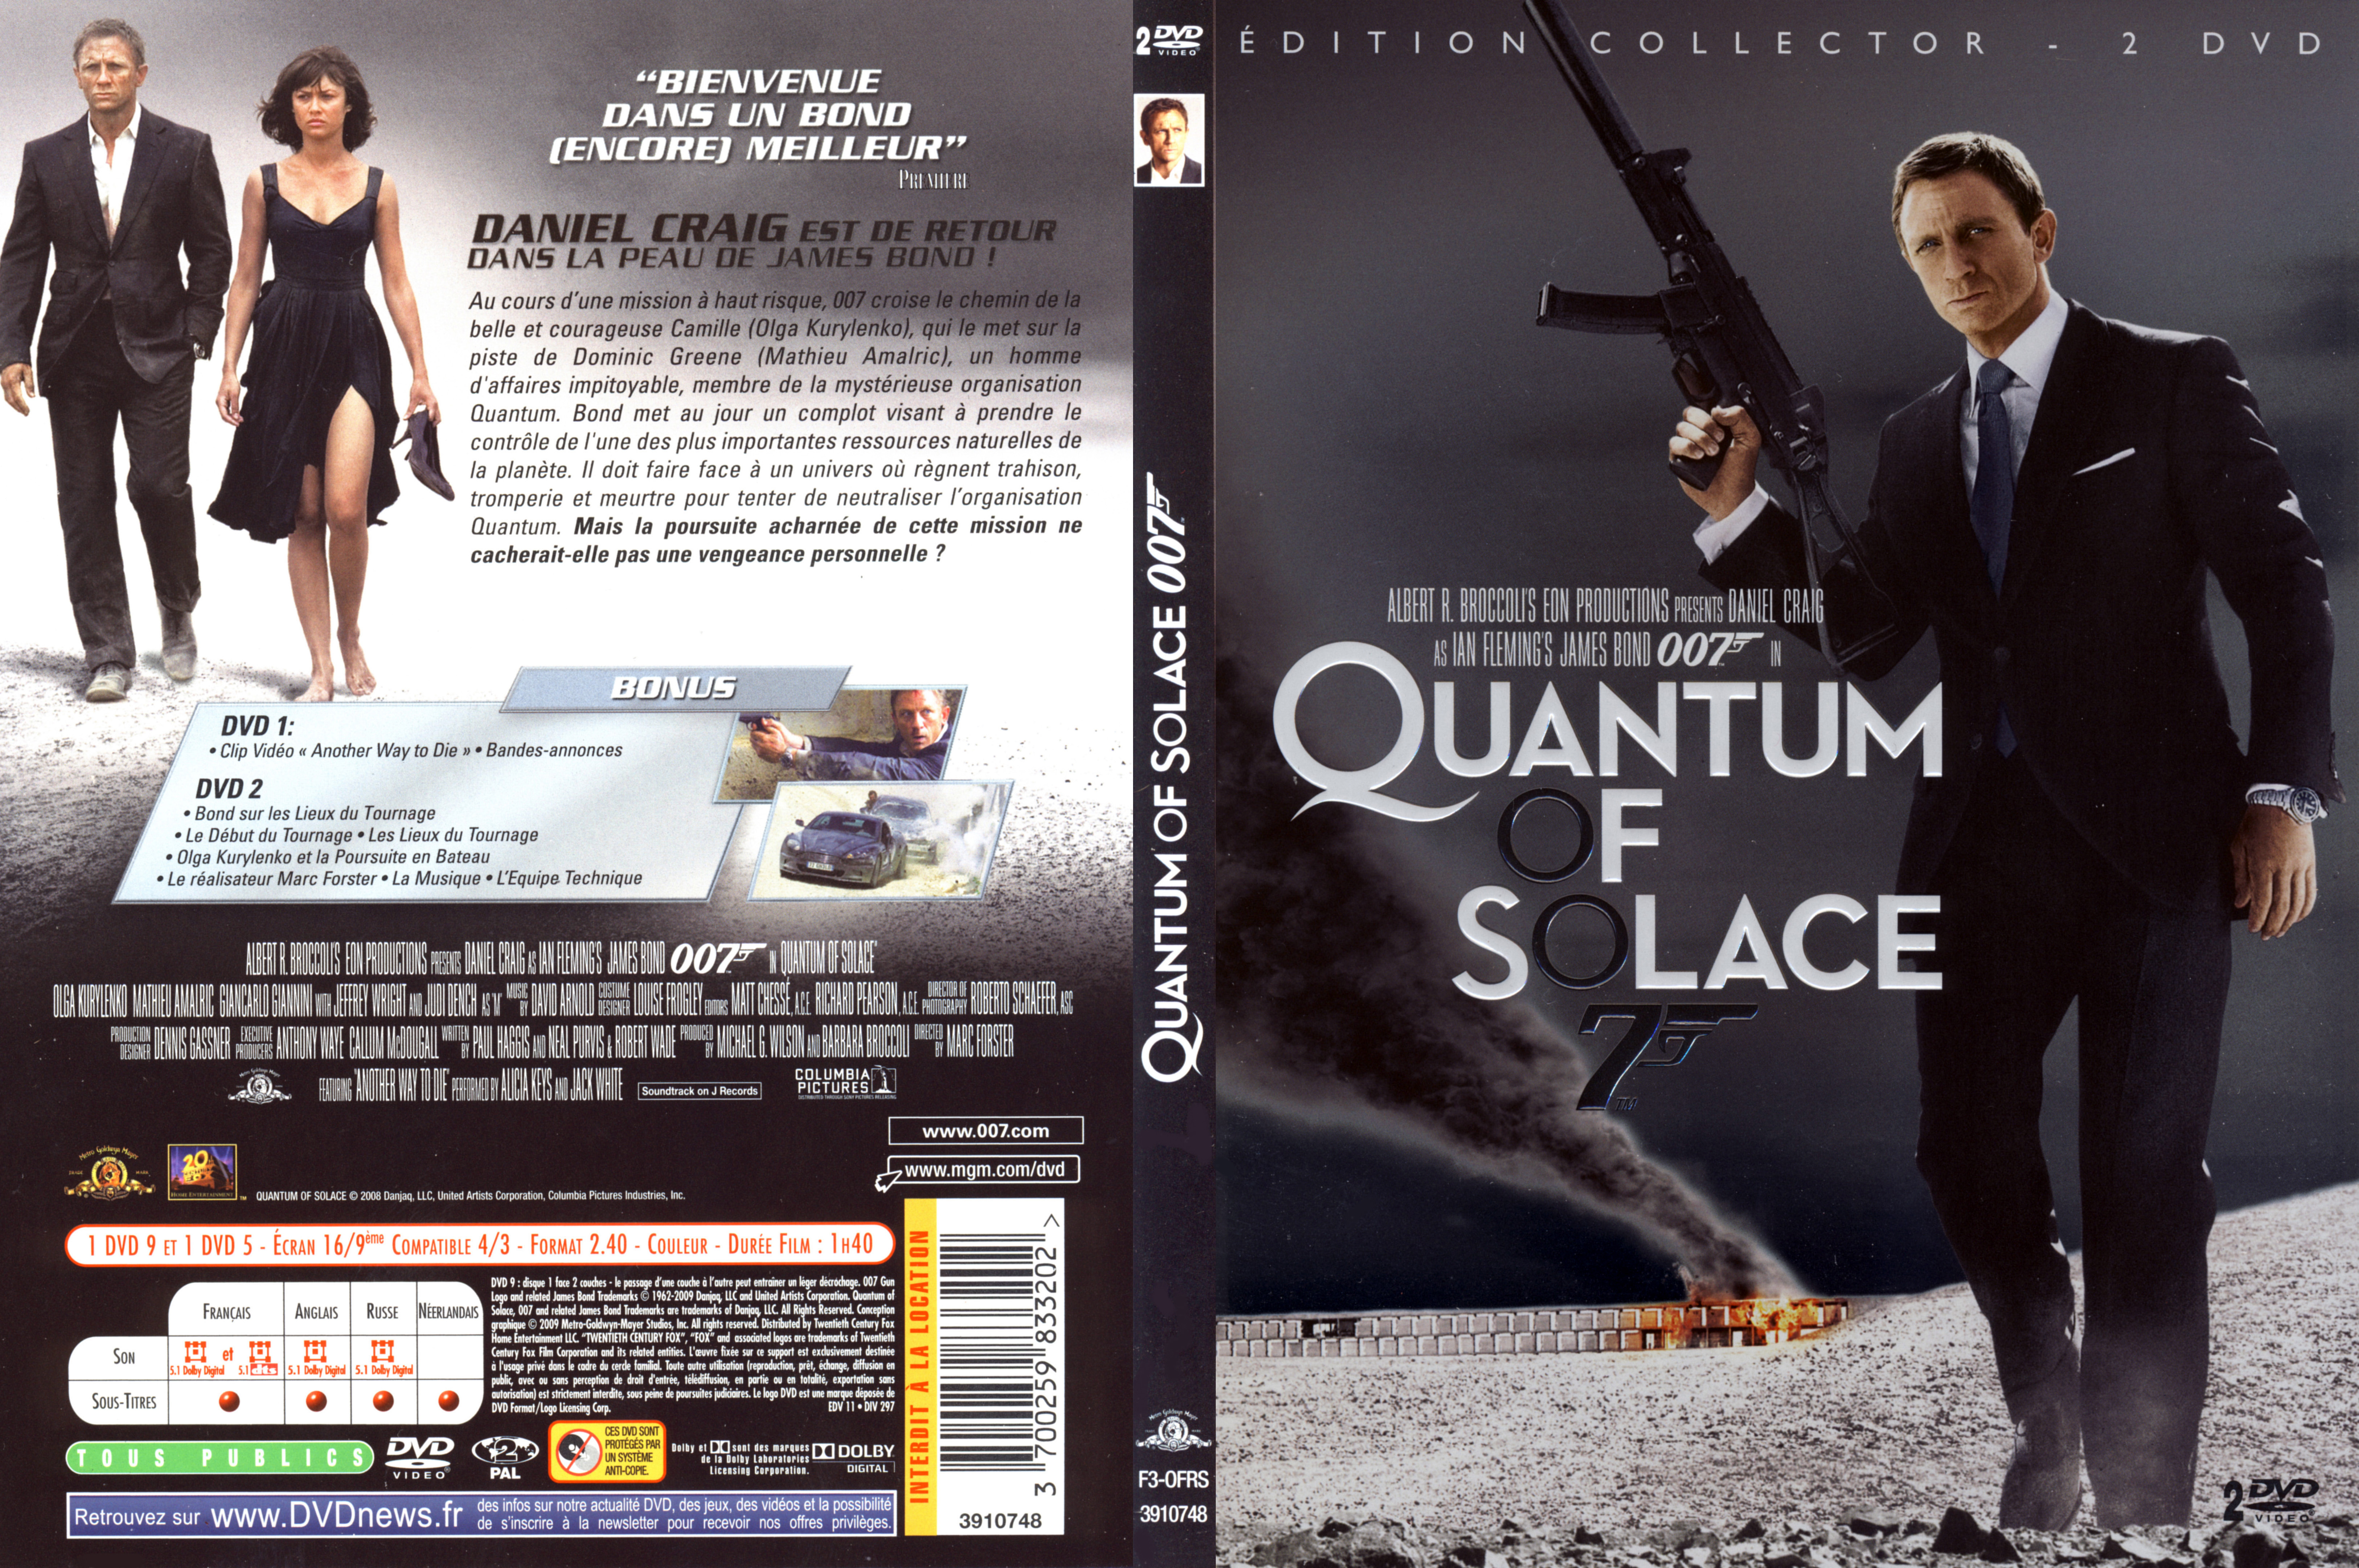 quantum of solace dvd cover - photo #14